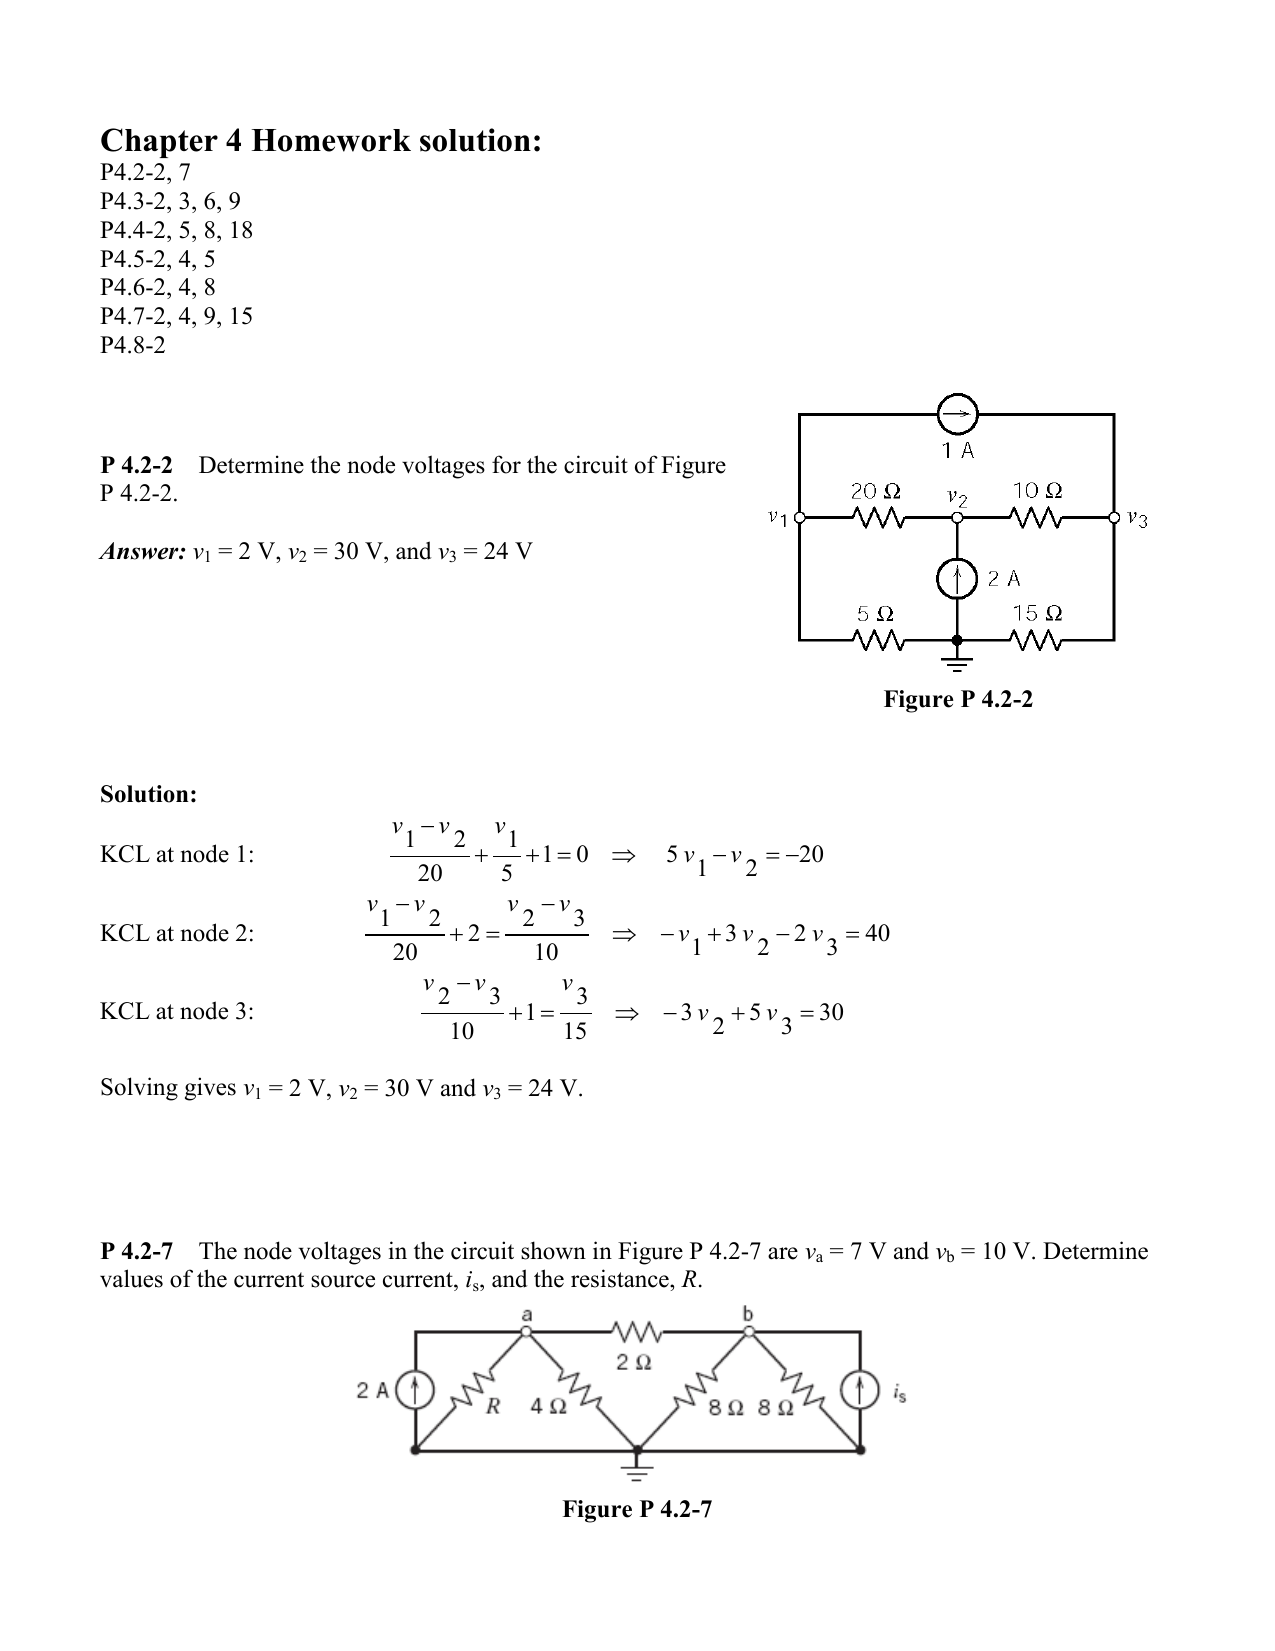 Chapter 4 Homework Solution Voltage Divider Network Has The Ability To Generate Different Voltages